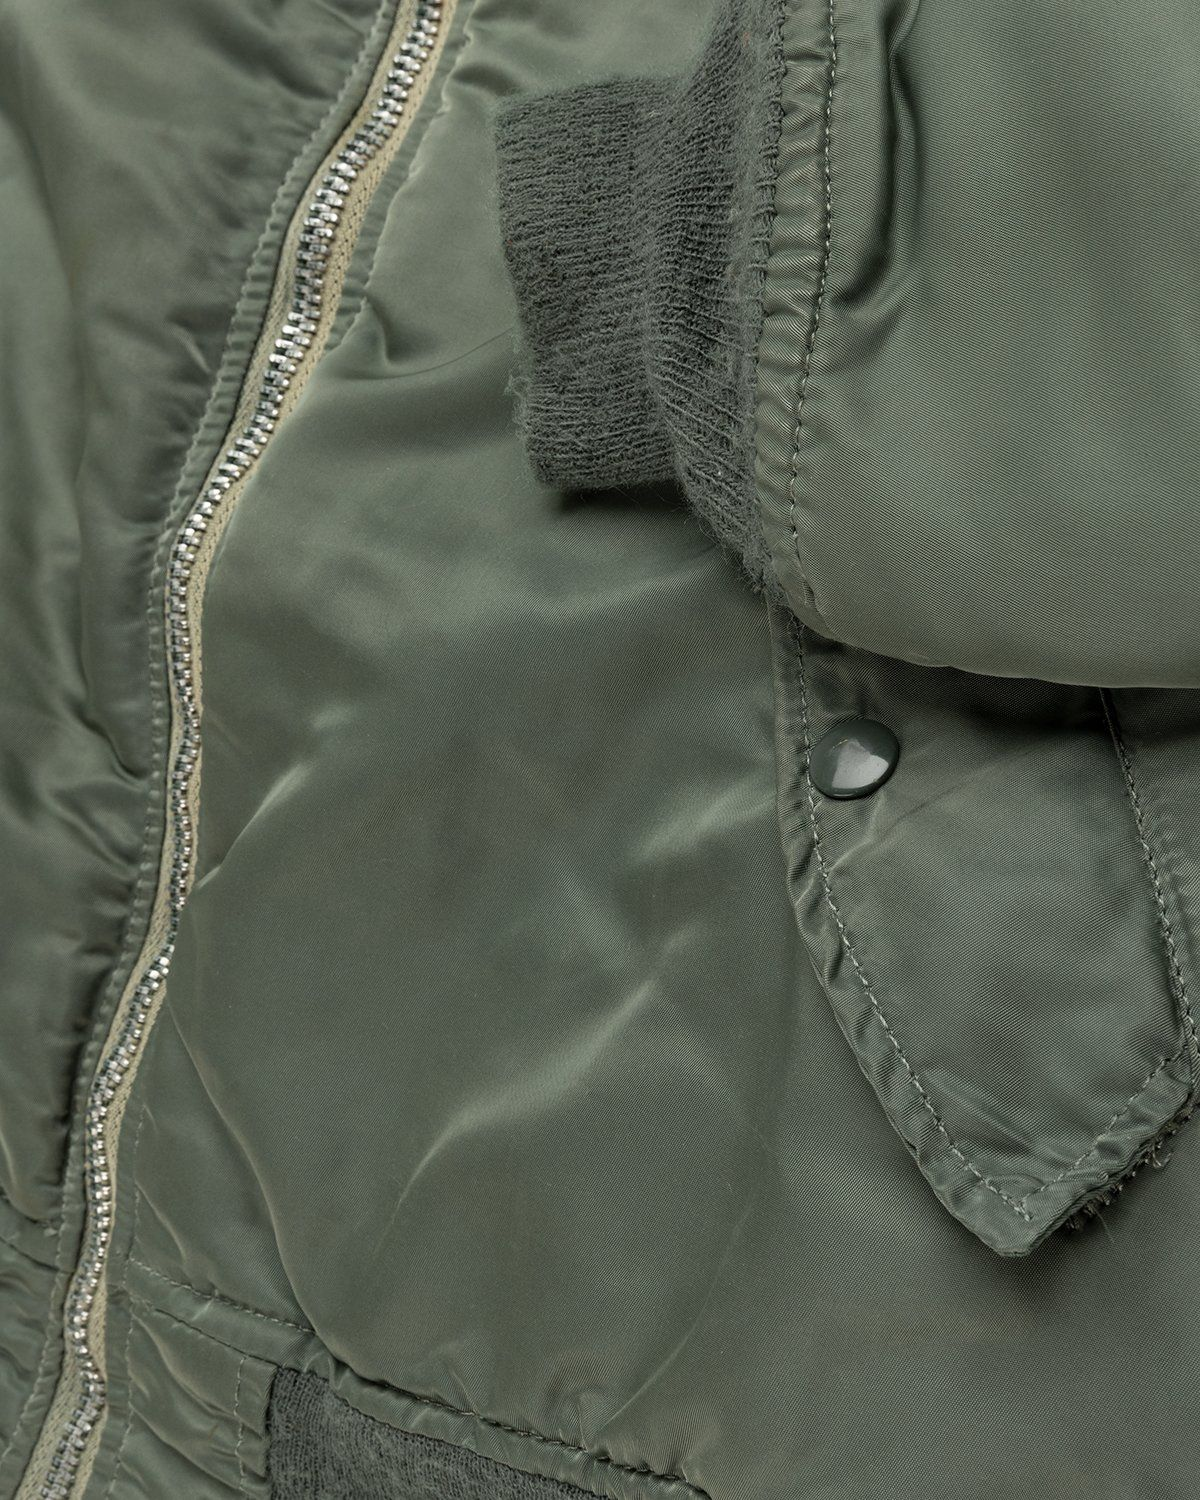 Highsnobiety – Berlin Berlin Embroidered Vintage MA-1 Green - Image 5